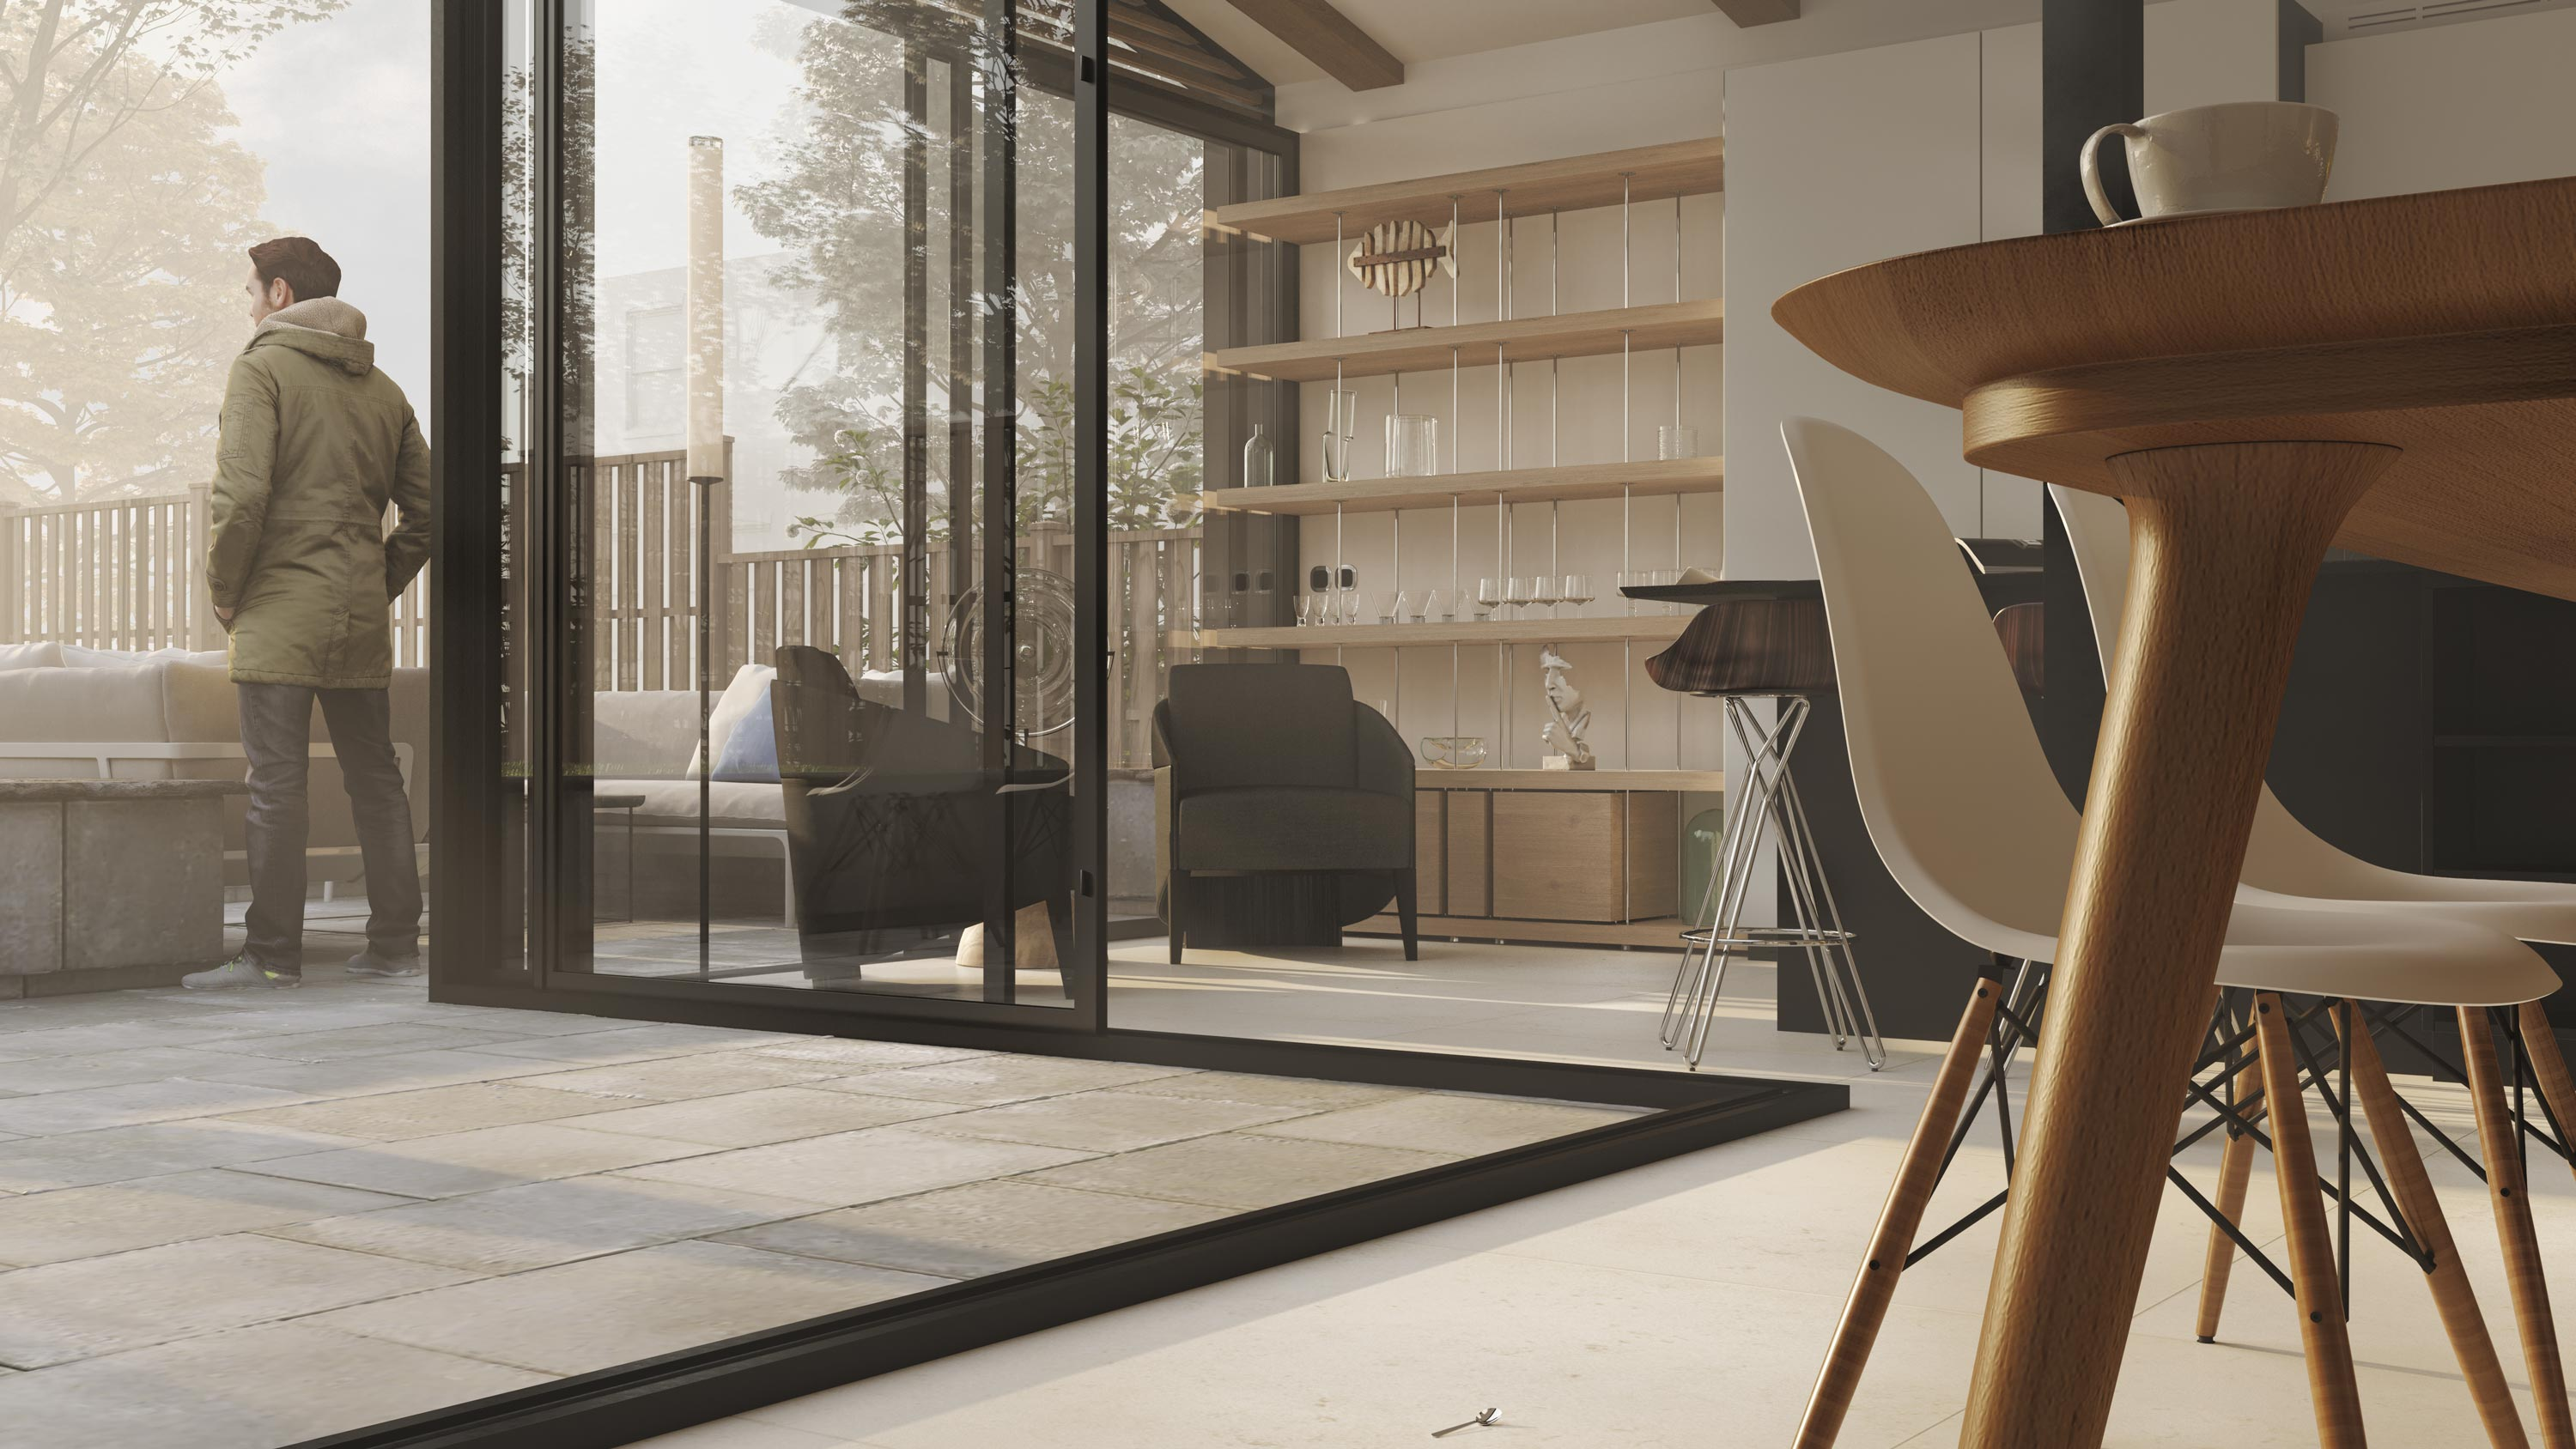 South Side CGI Interior Project